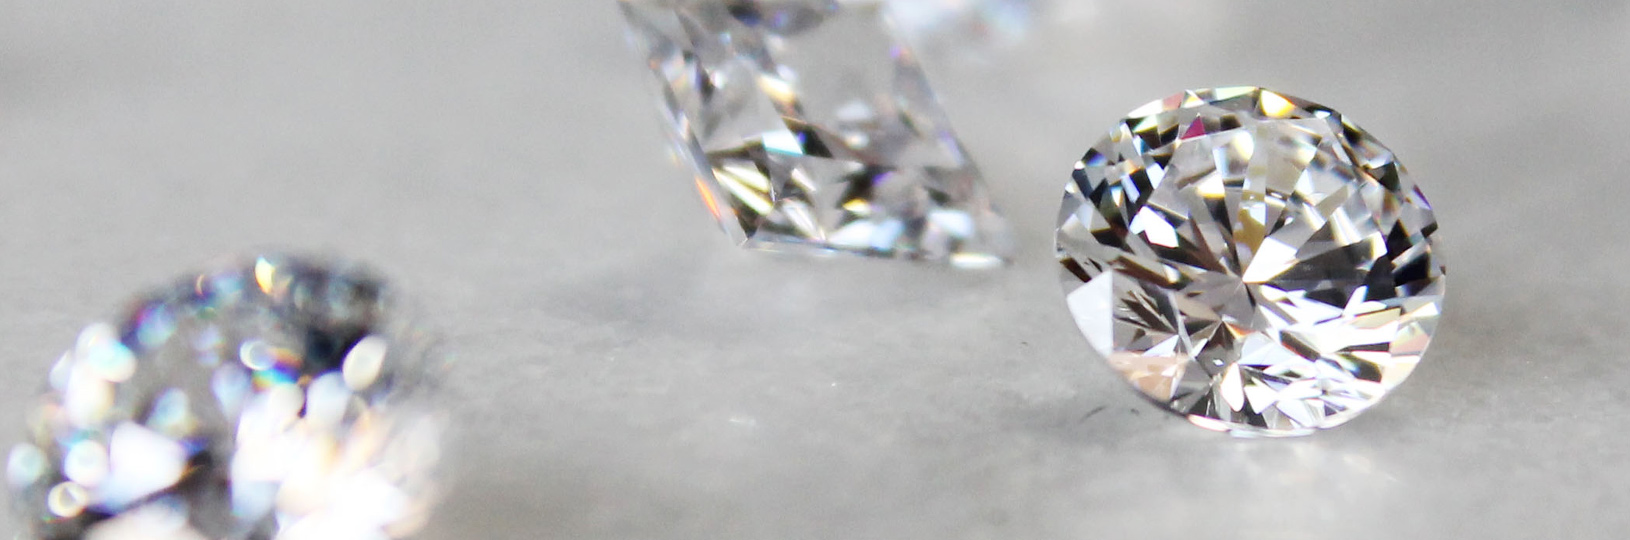 A close up image of lab grown diamonds